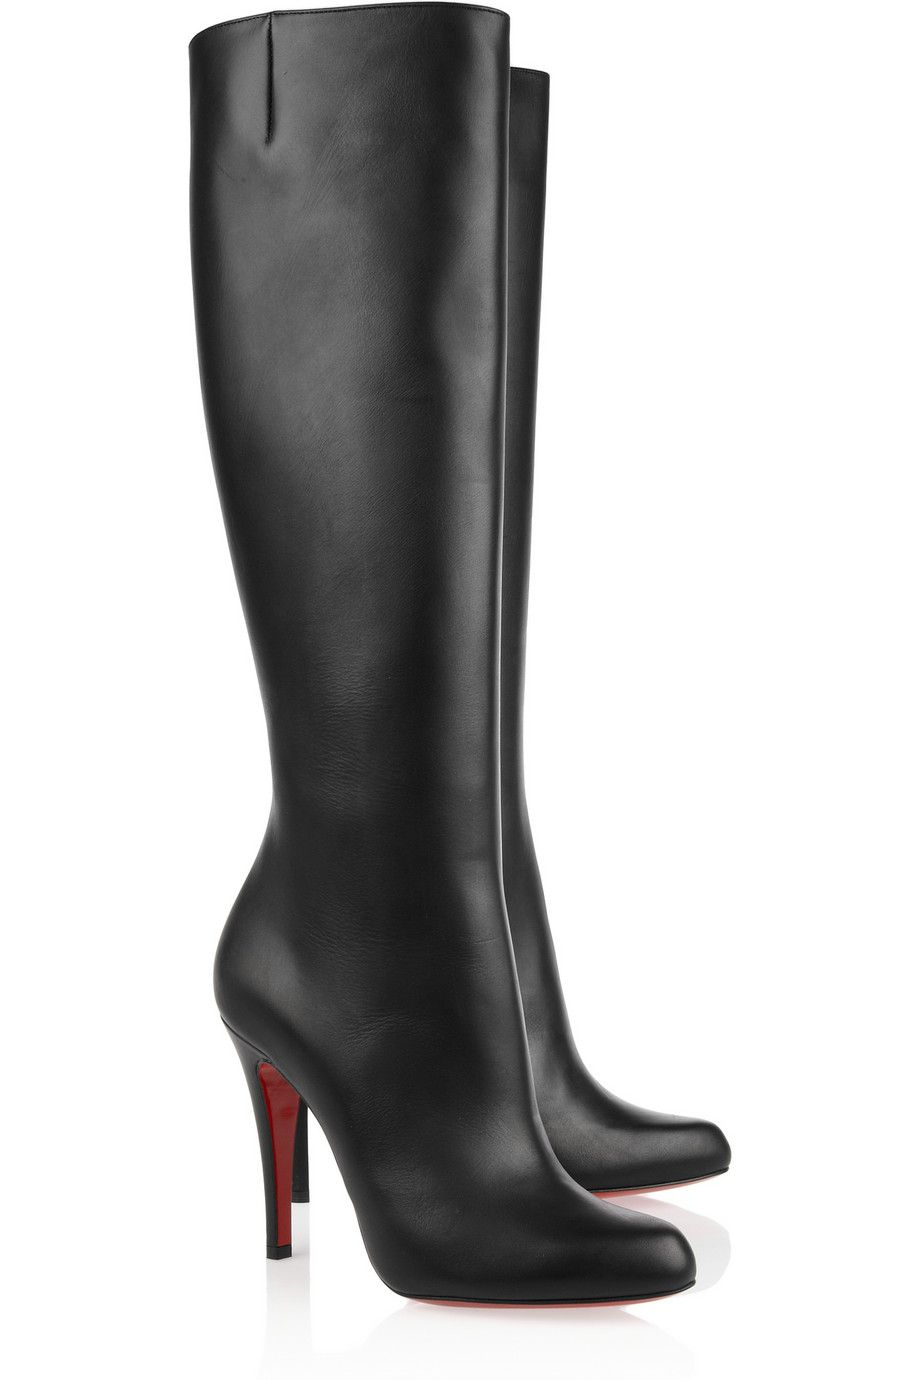 buy popular 40ef0 3f58c Christian Louboutin | Bourge 100 leather knee boots | NET-A ...